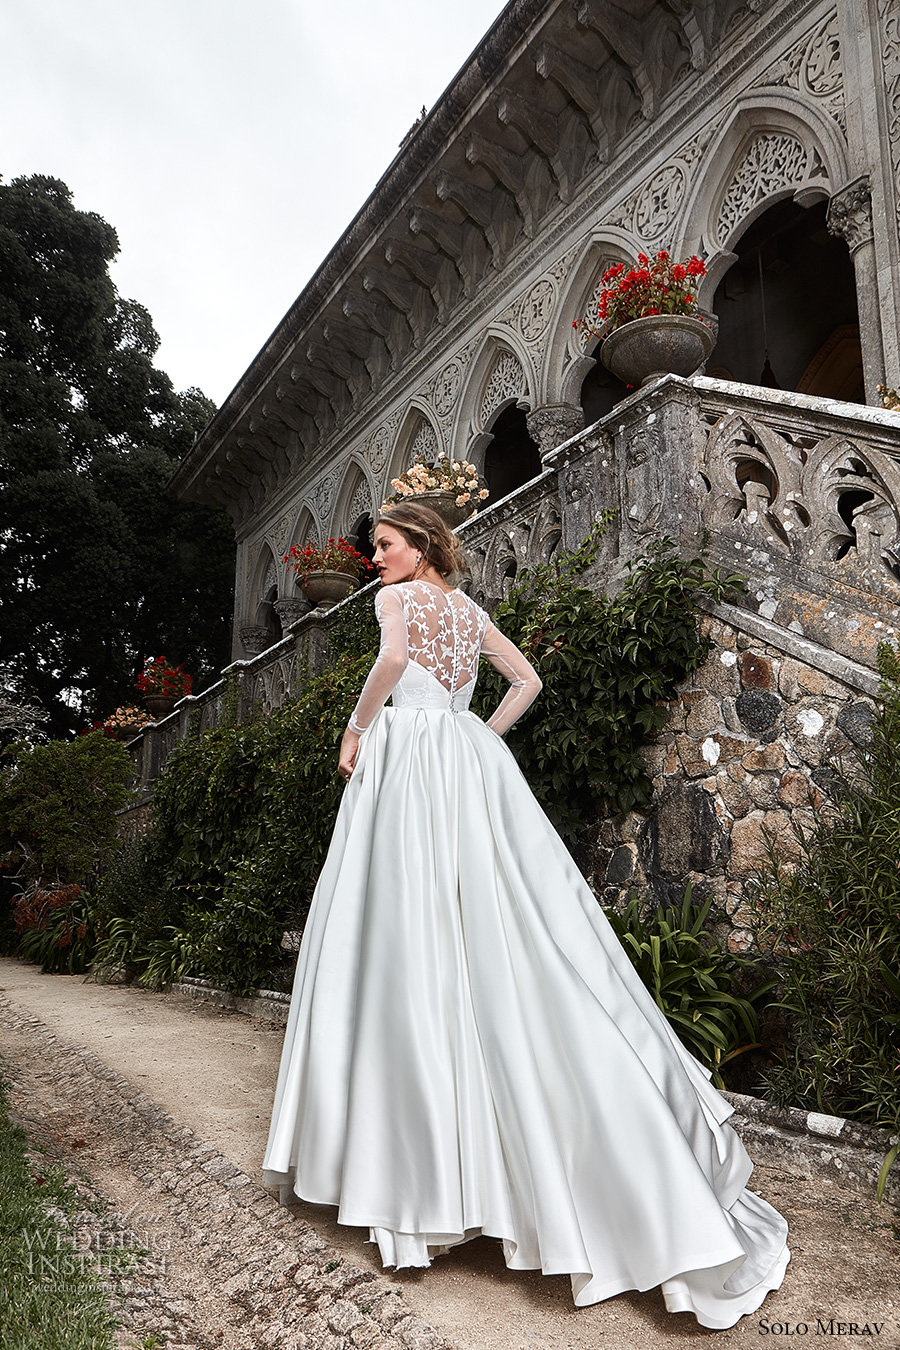 Solo merav 2017 wedding dresses games of lace bridal for Ball gown wedding dresses with long trains